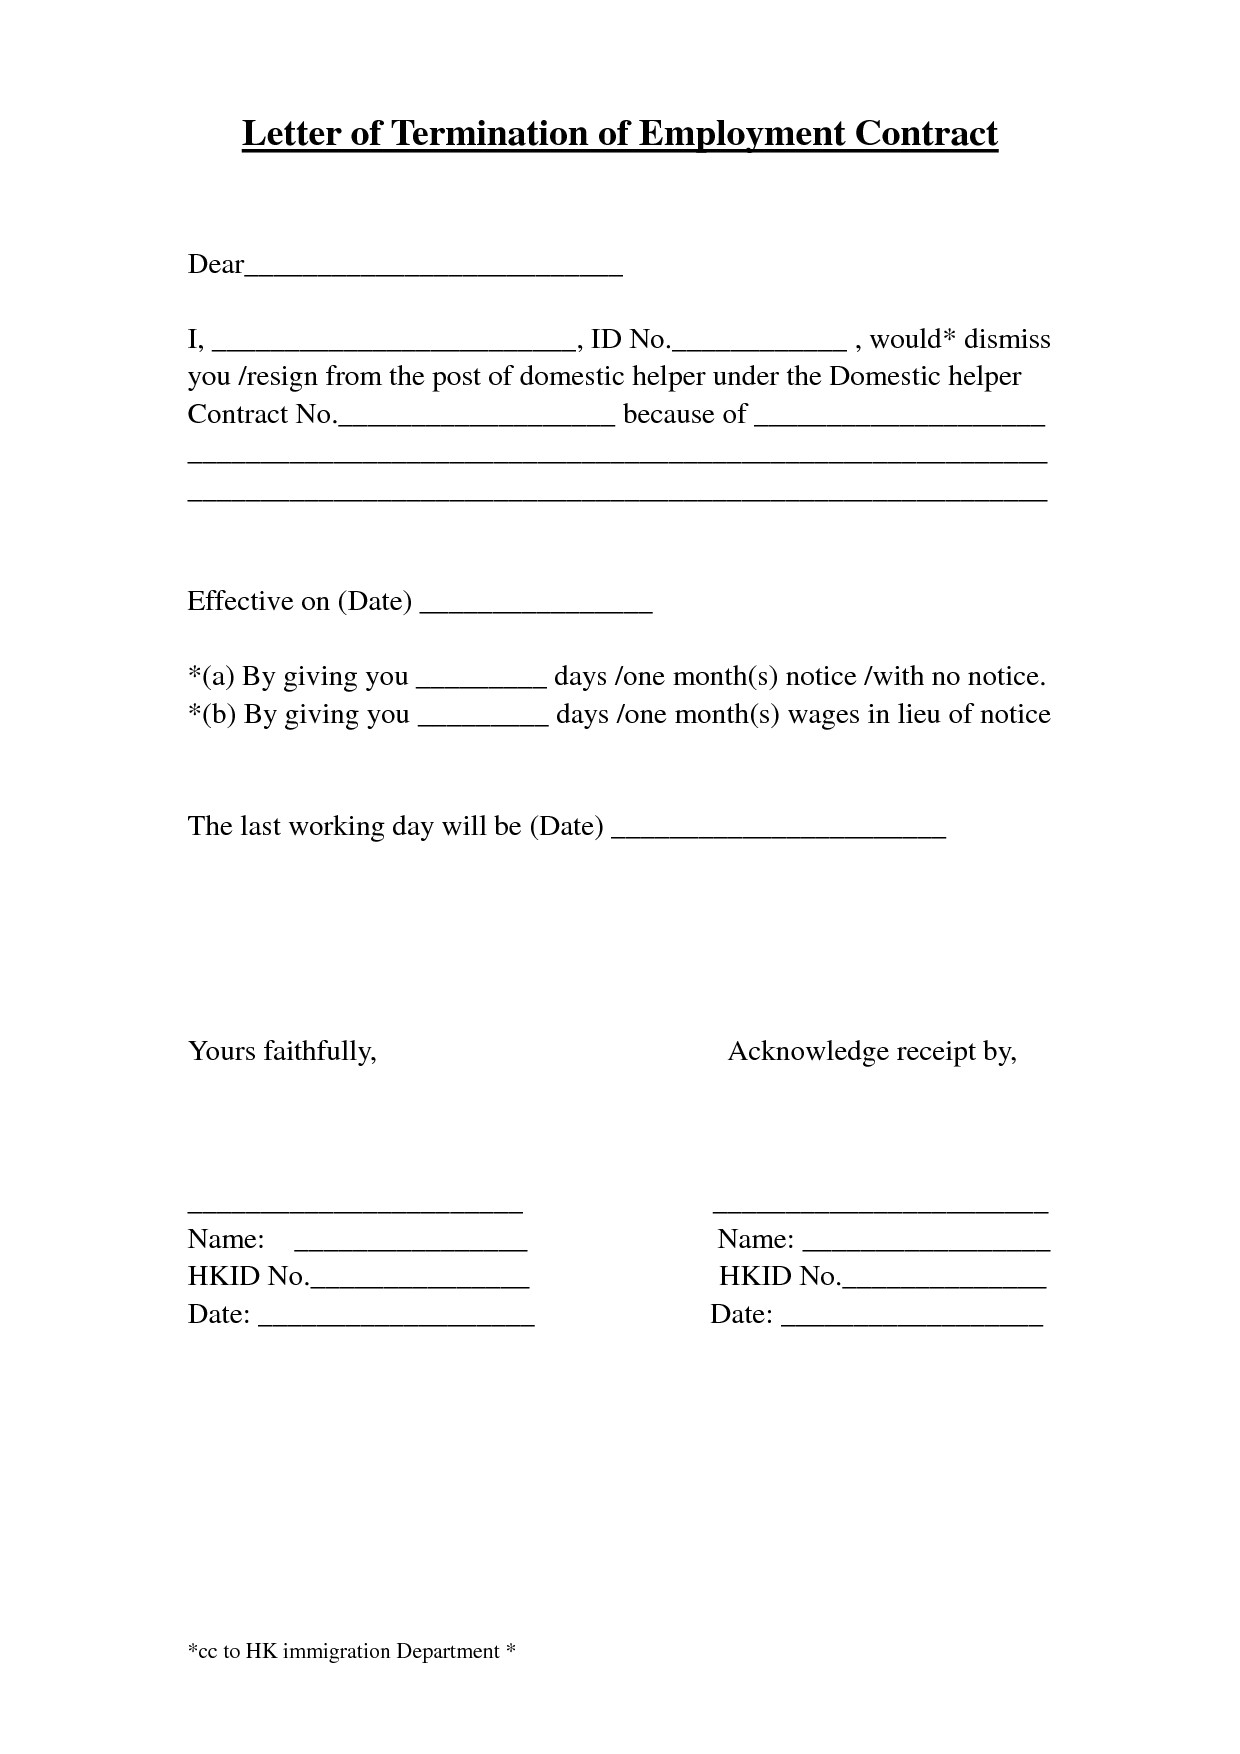 termination of employment letter template Collection-Certificate Termination Employment Sample Copy Template Letter Termination Employment Template New Employment Termination form 9-l